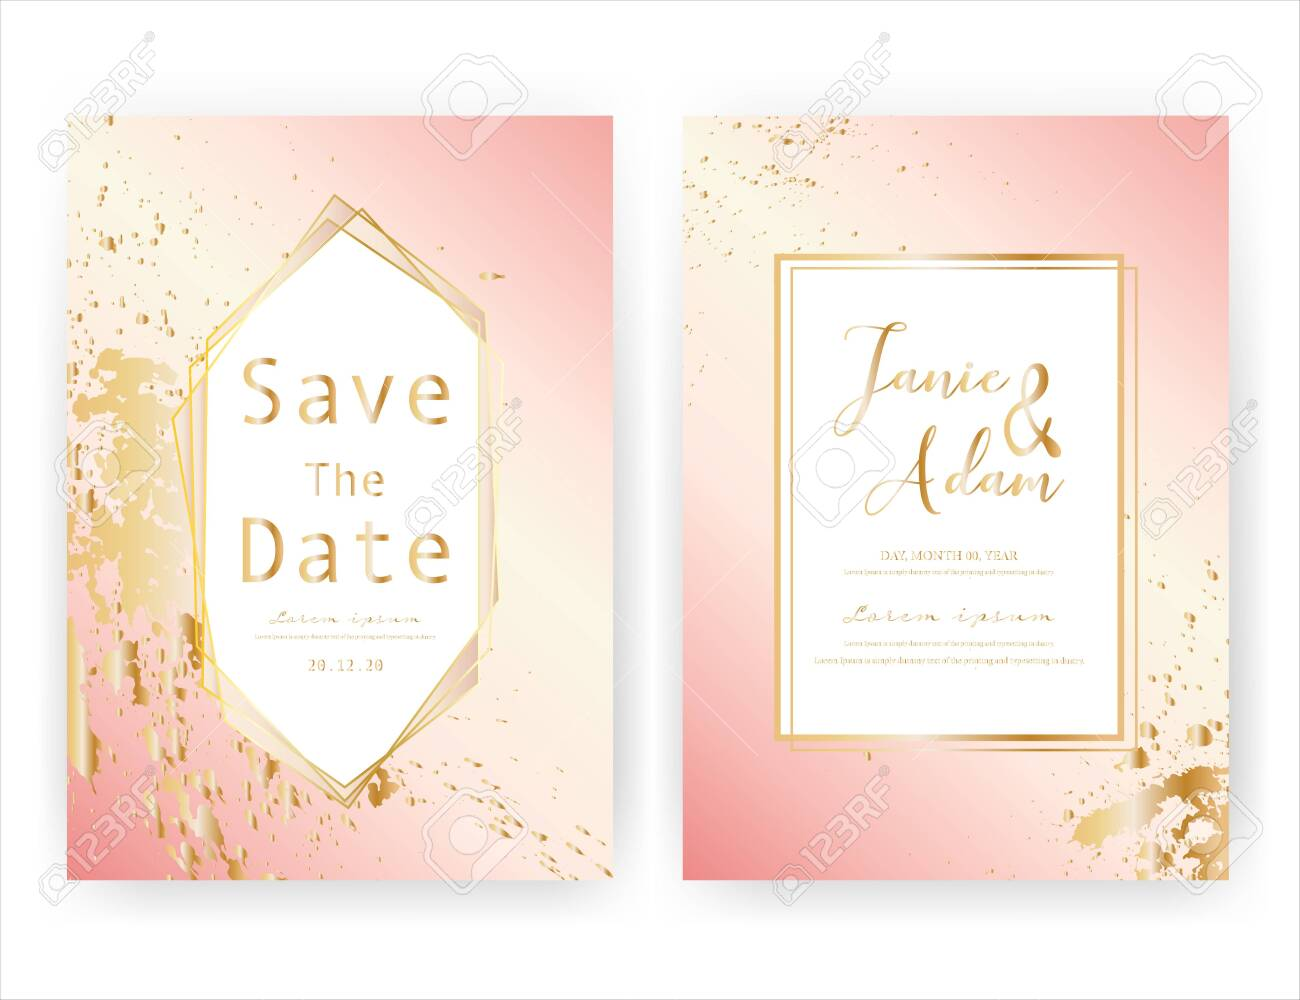 54d0ad36d9b0e Wedding invitation card, Save the date wedding card, Modern card..